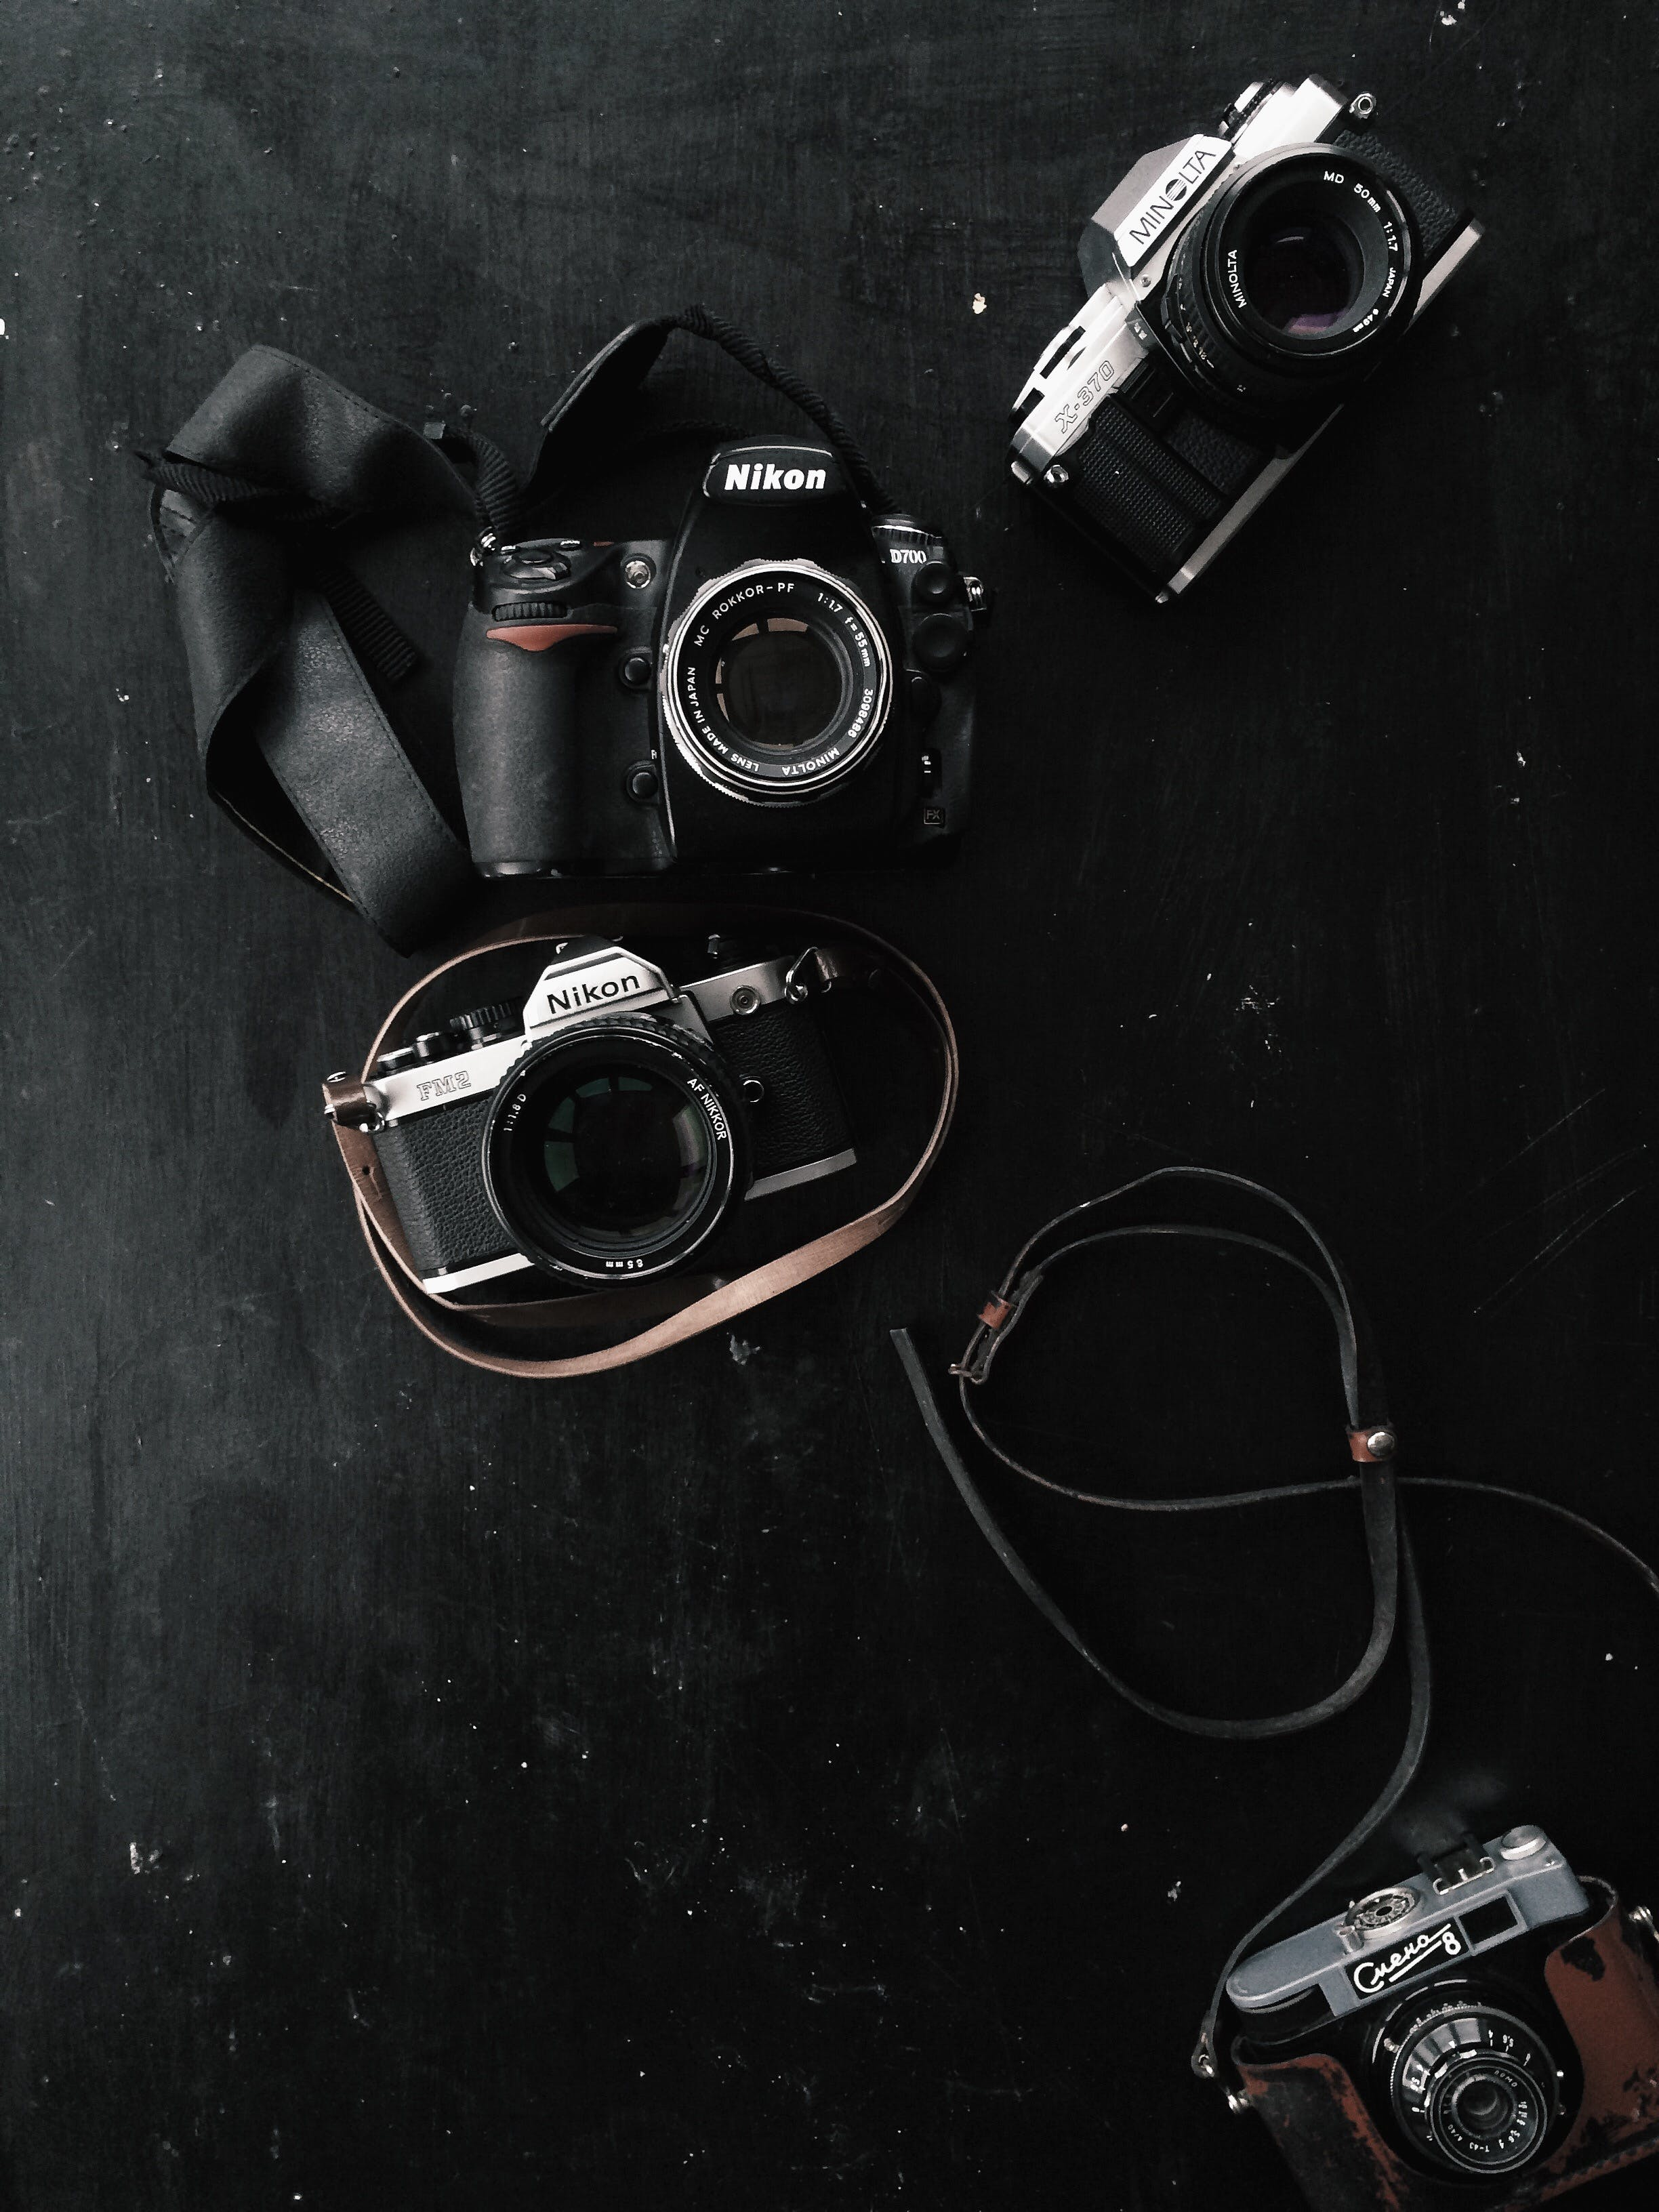 Three Black and Gray Dslr and Slr Cameras